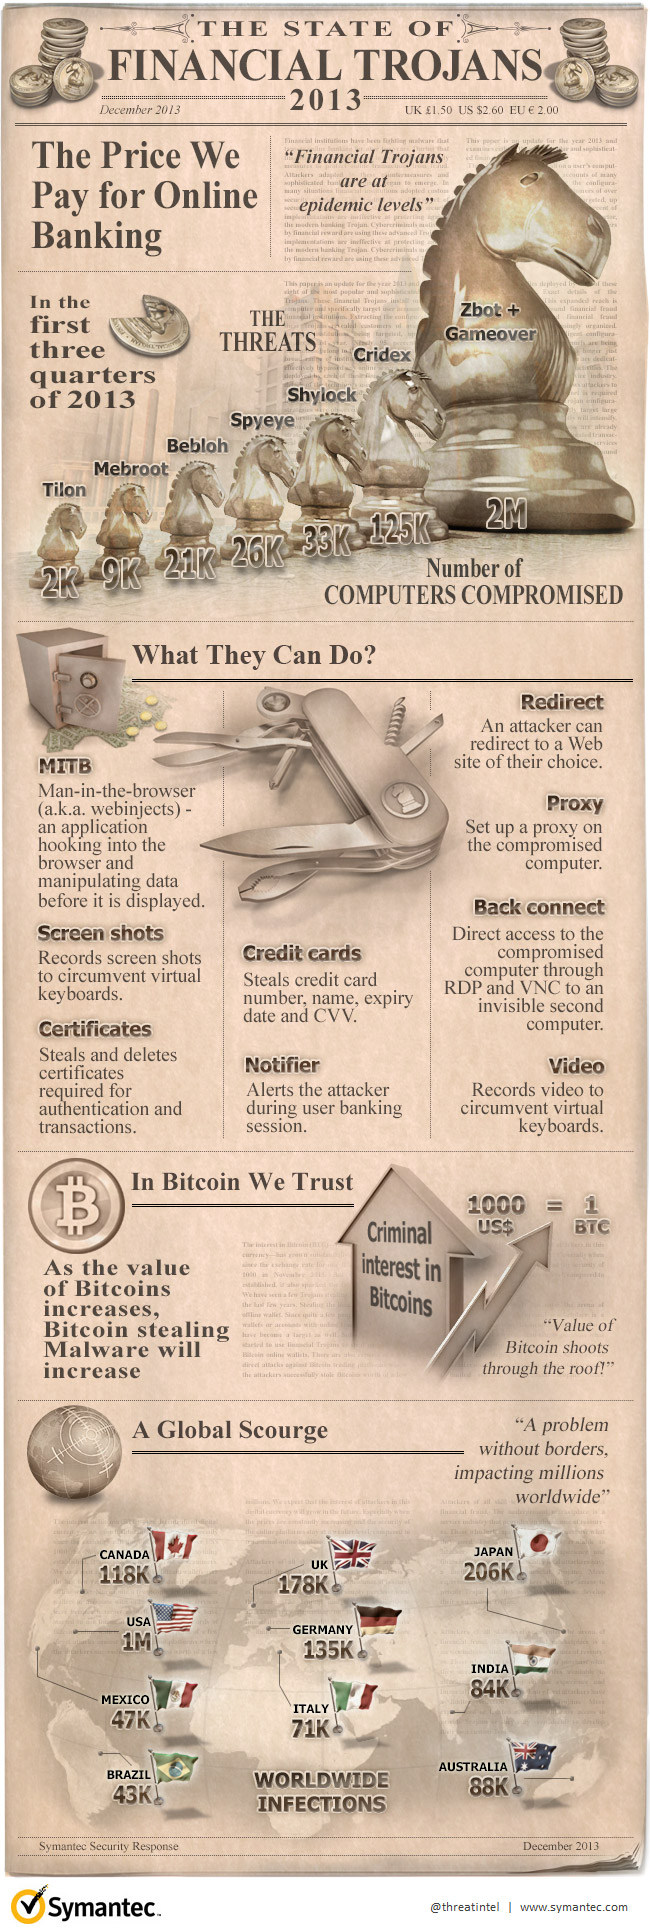 the_state_of_financial_trojans_infographic_v1.1_0.jpg